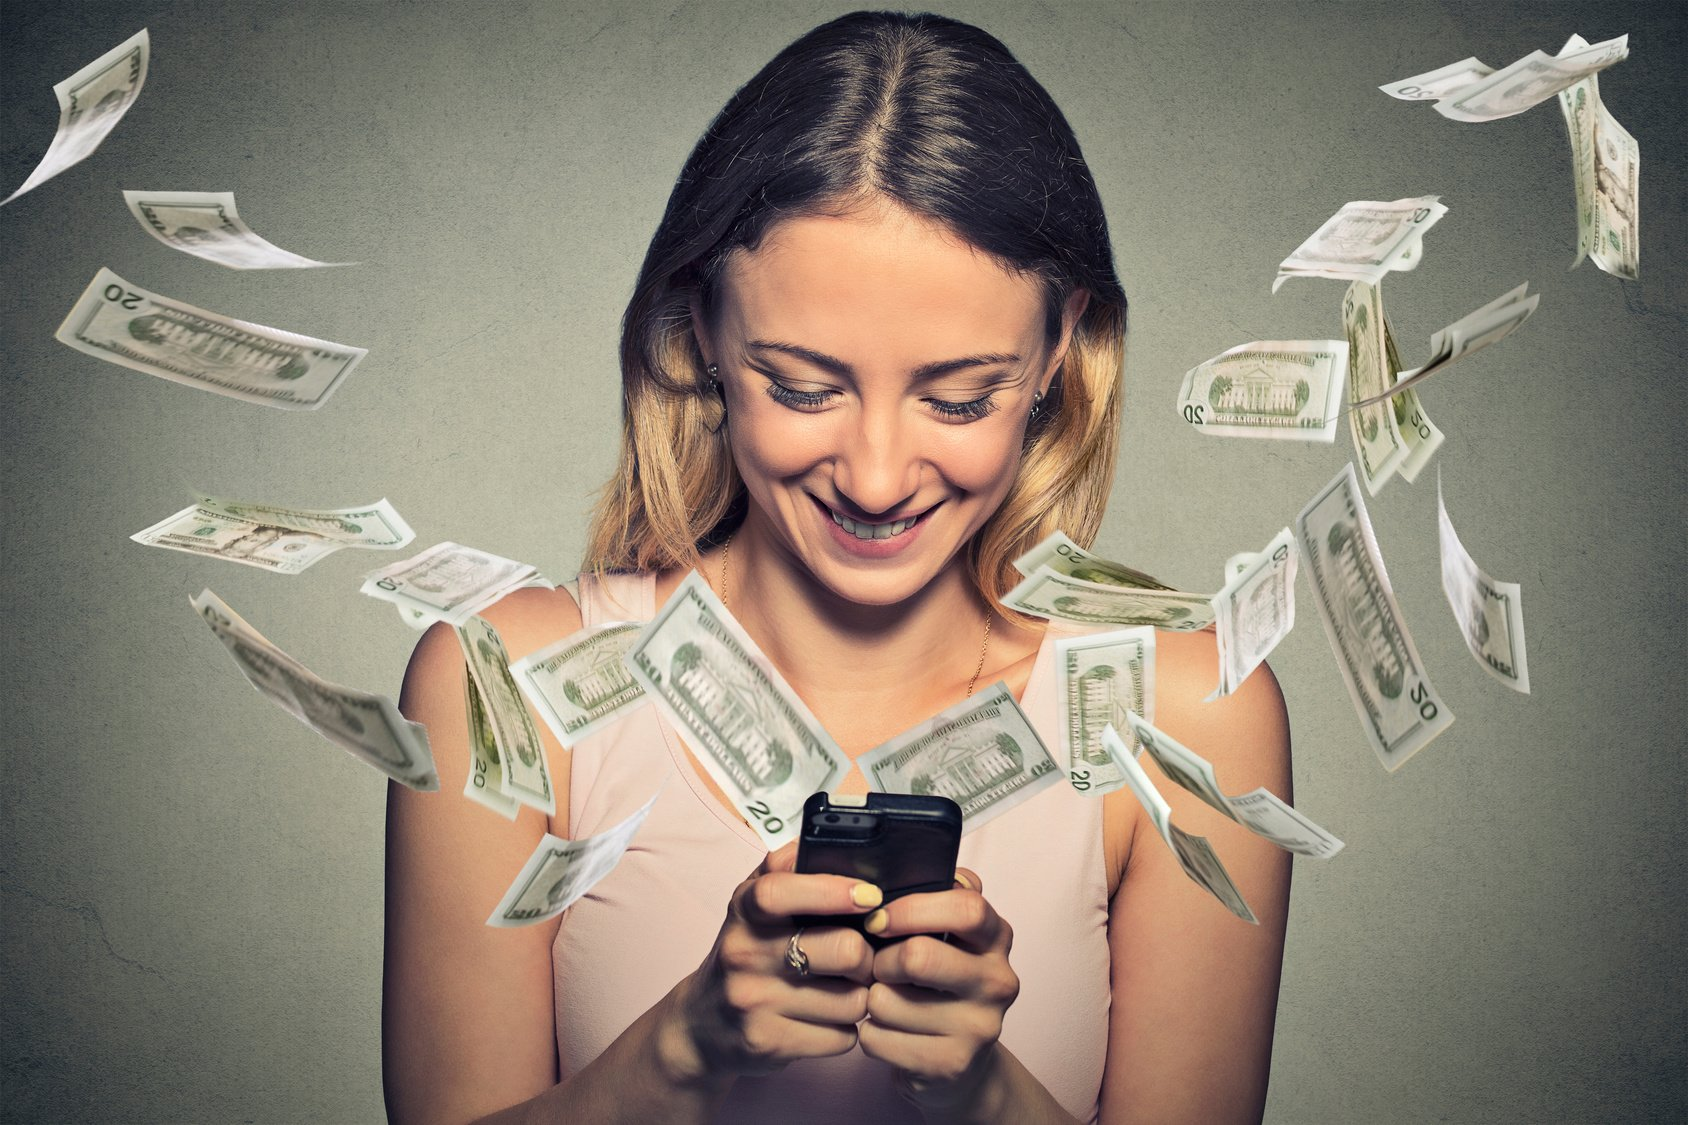 Money flying out of phone held by a smiling woman